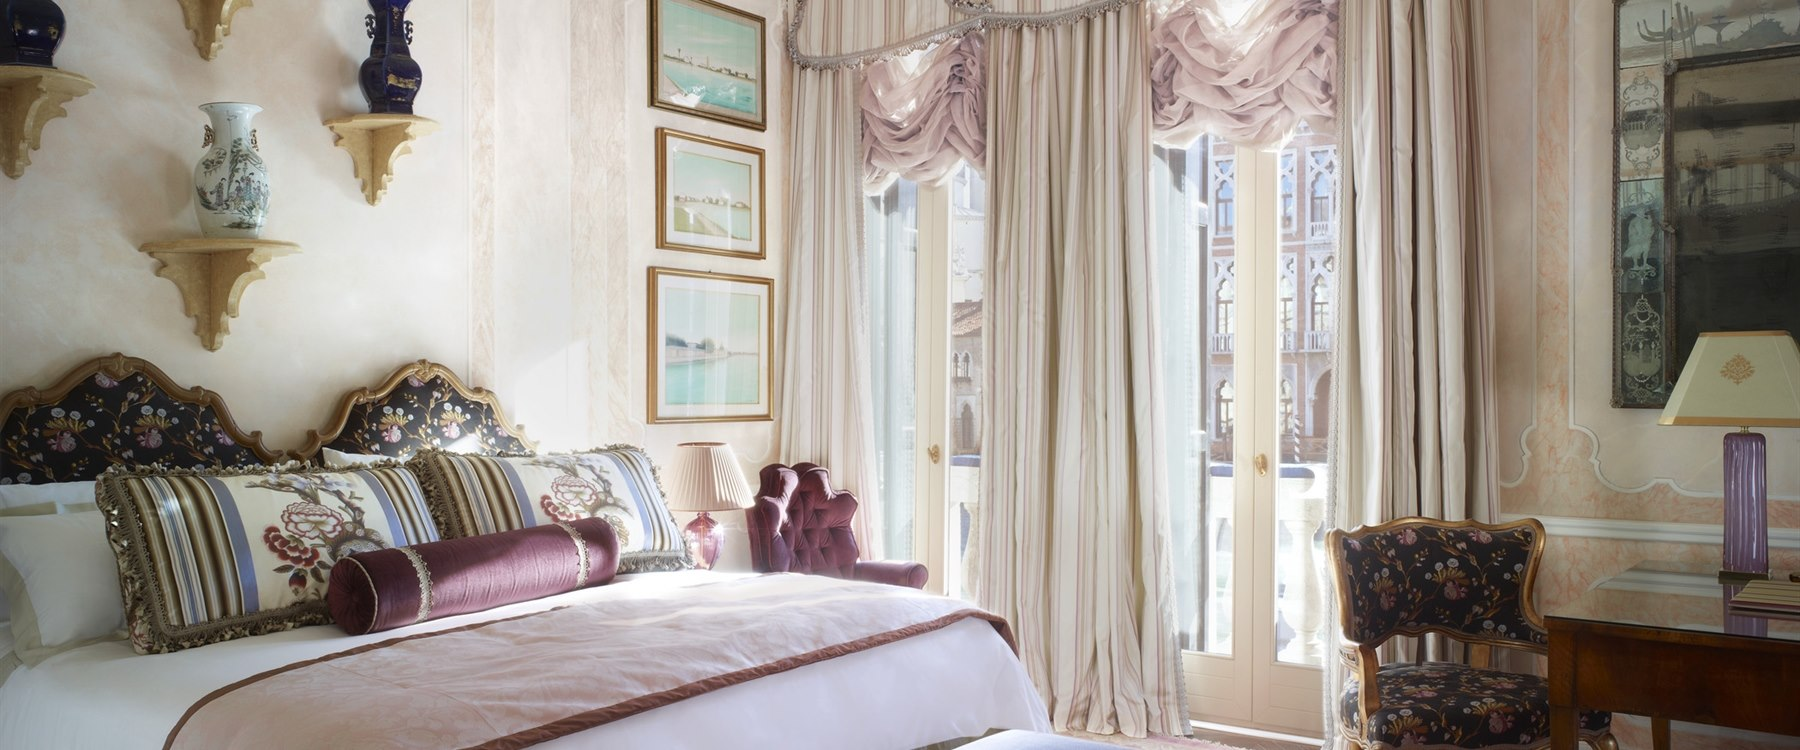 the somerset maugham royal suite at Gritti Palace, Venice